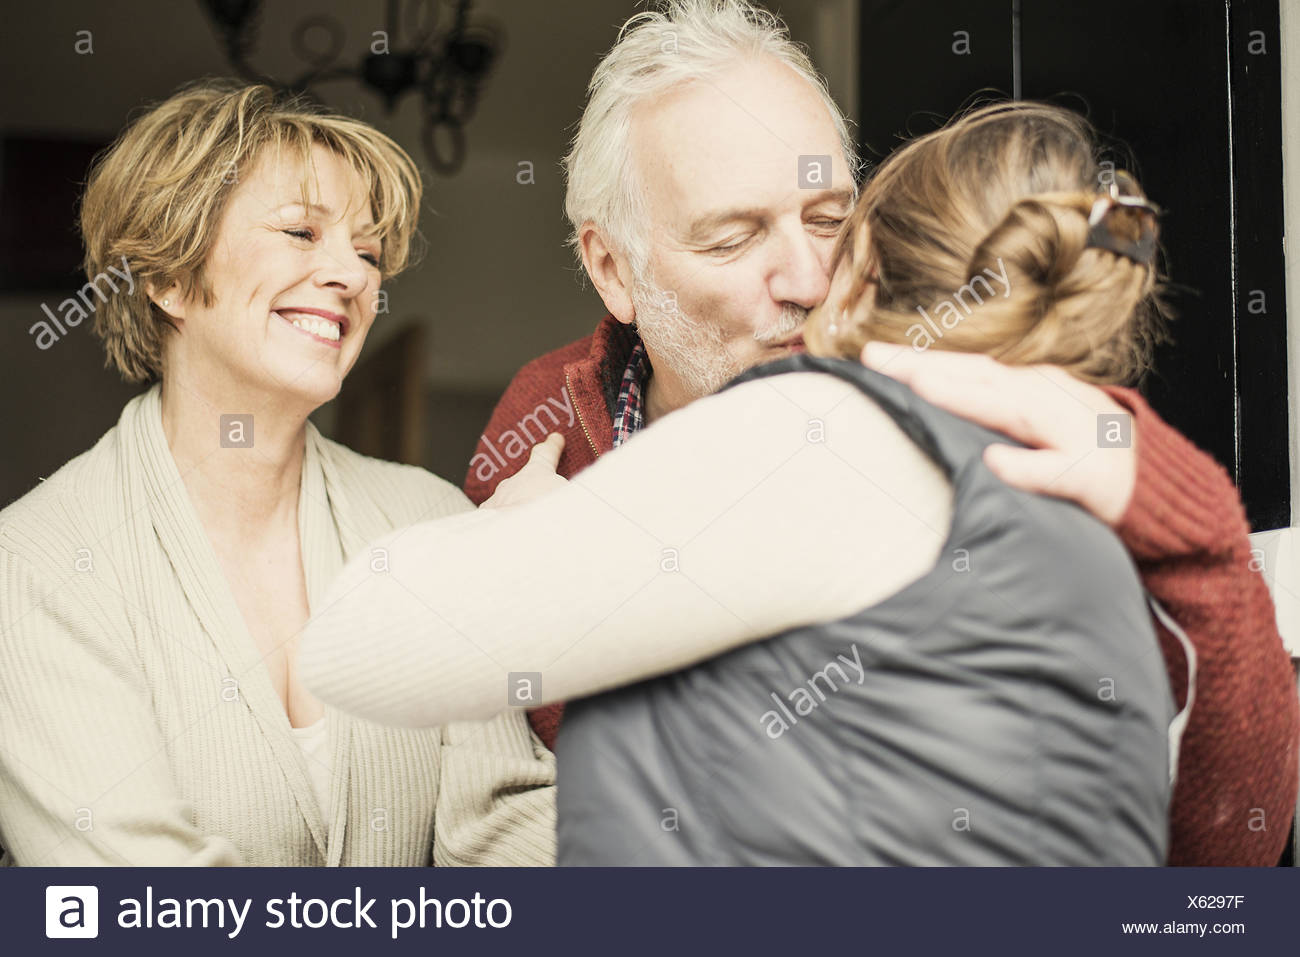 Father kissing adult daughter, mother smiling - Stock Image